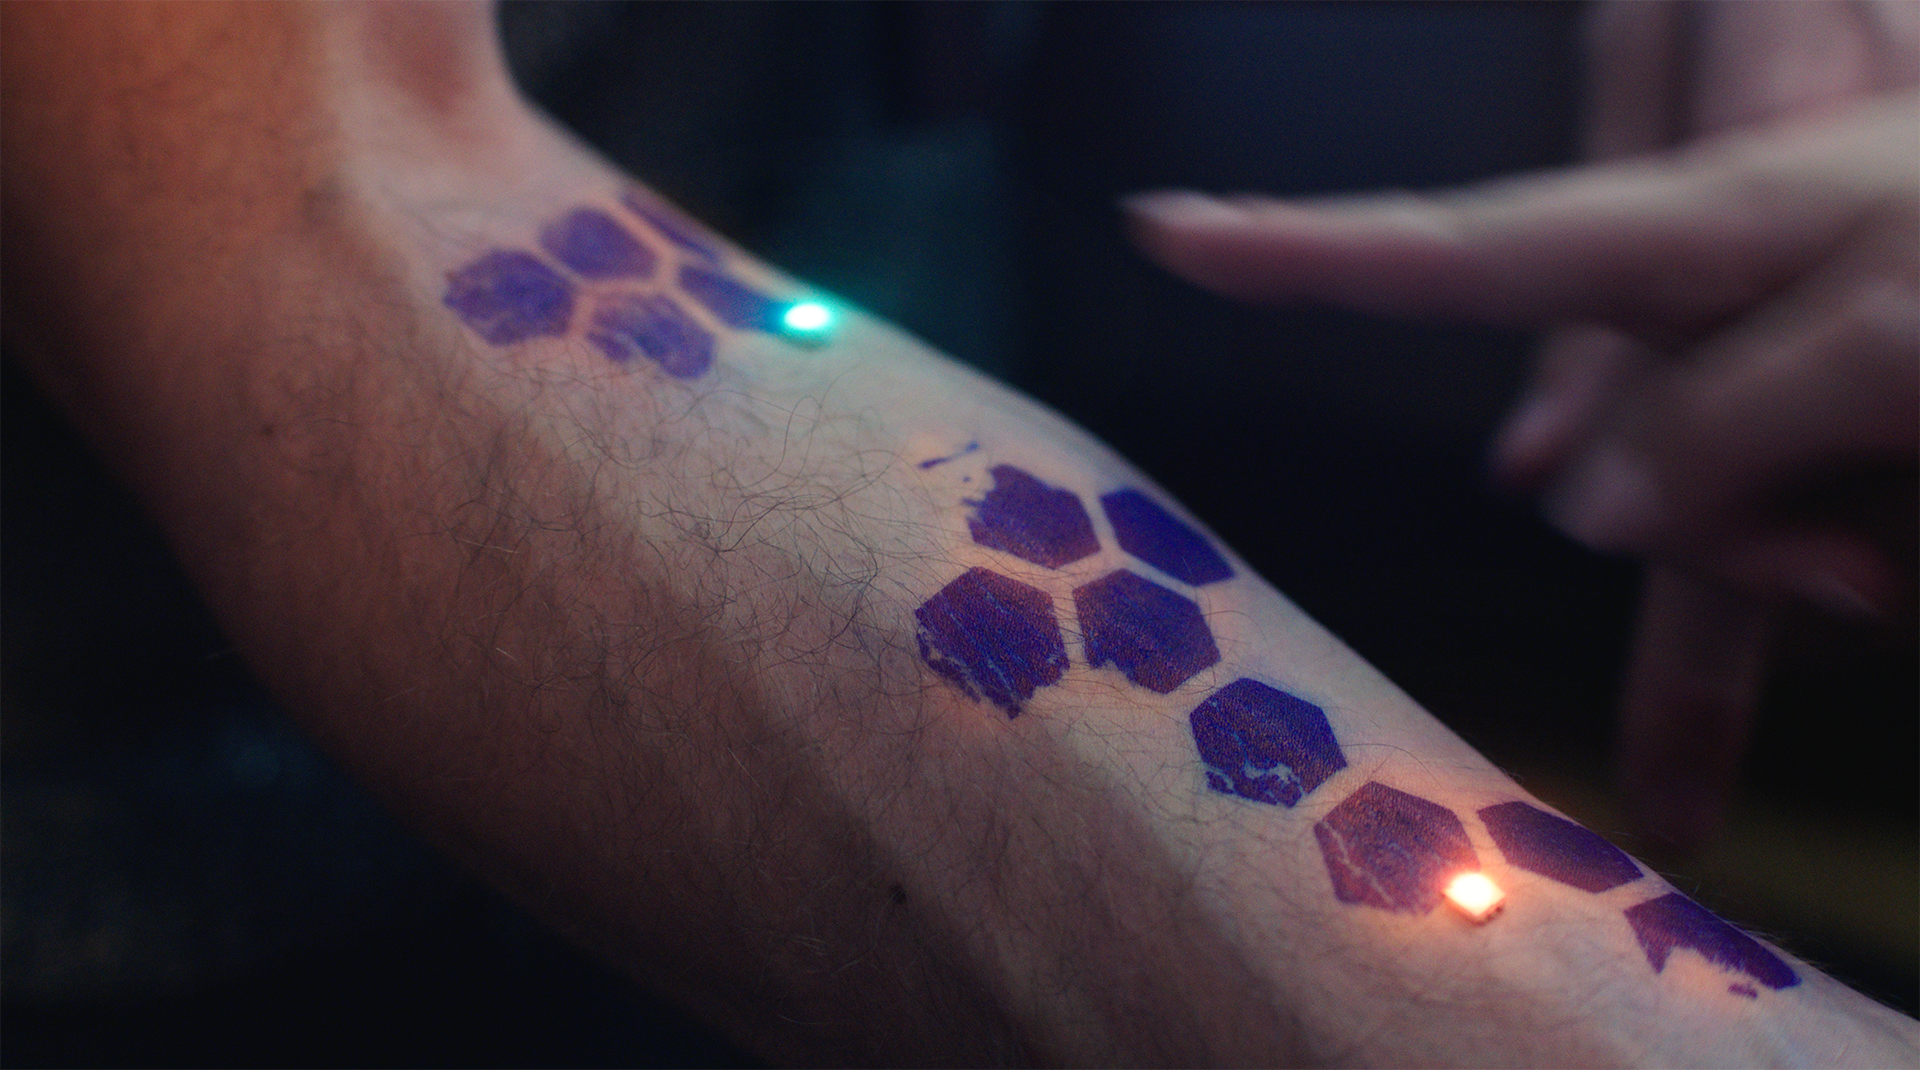 Tattoos Of The Future Could Soon Be Made Of Illuminated Skin